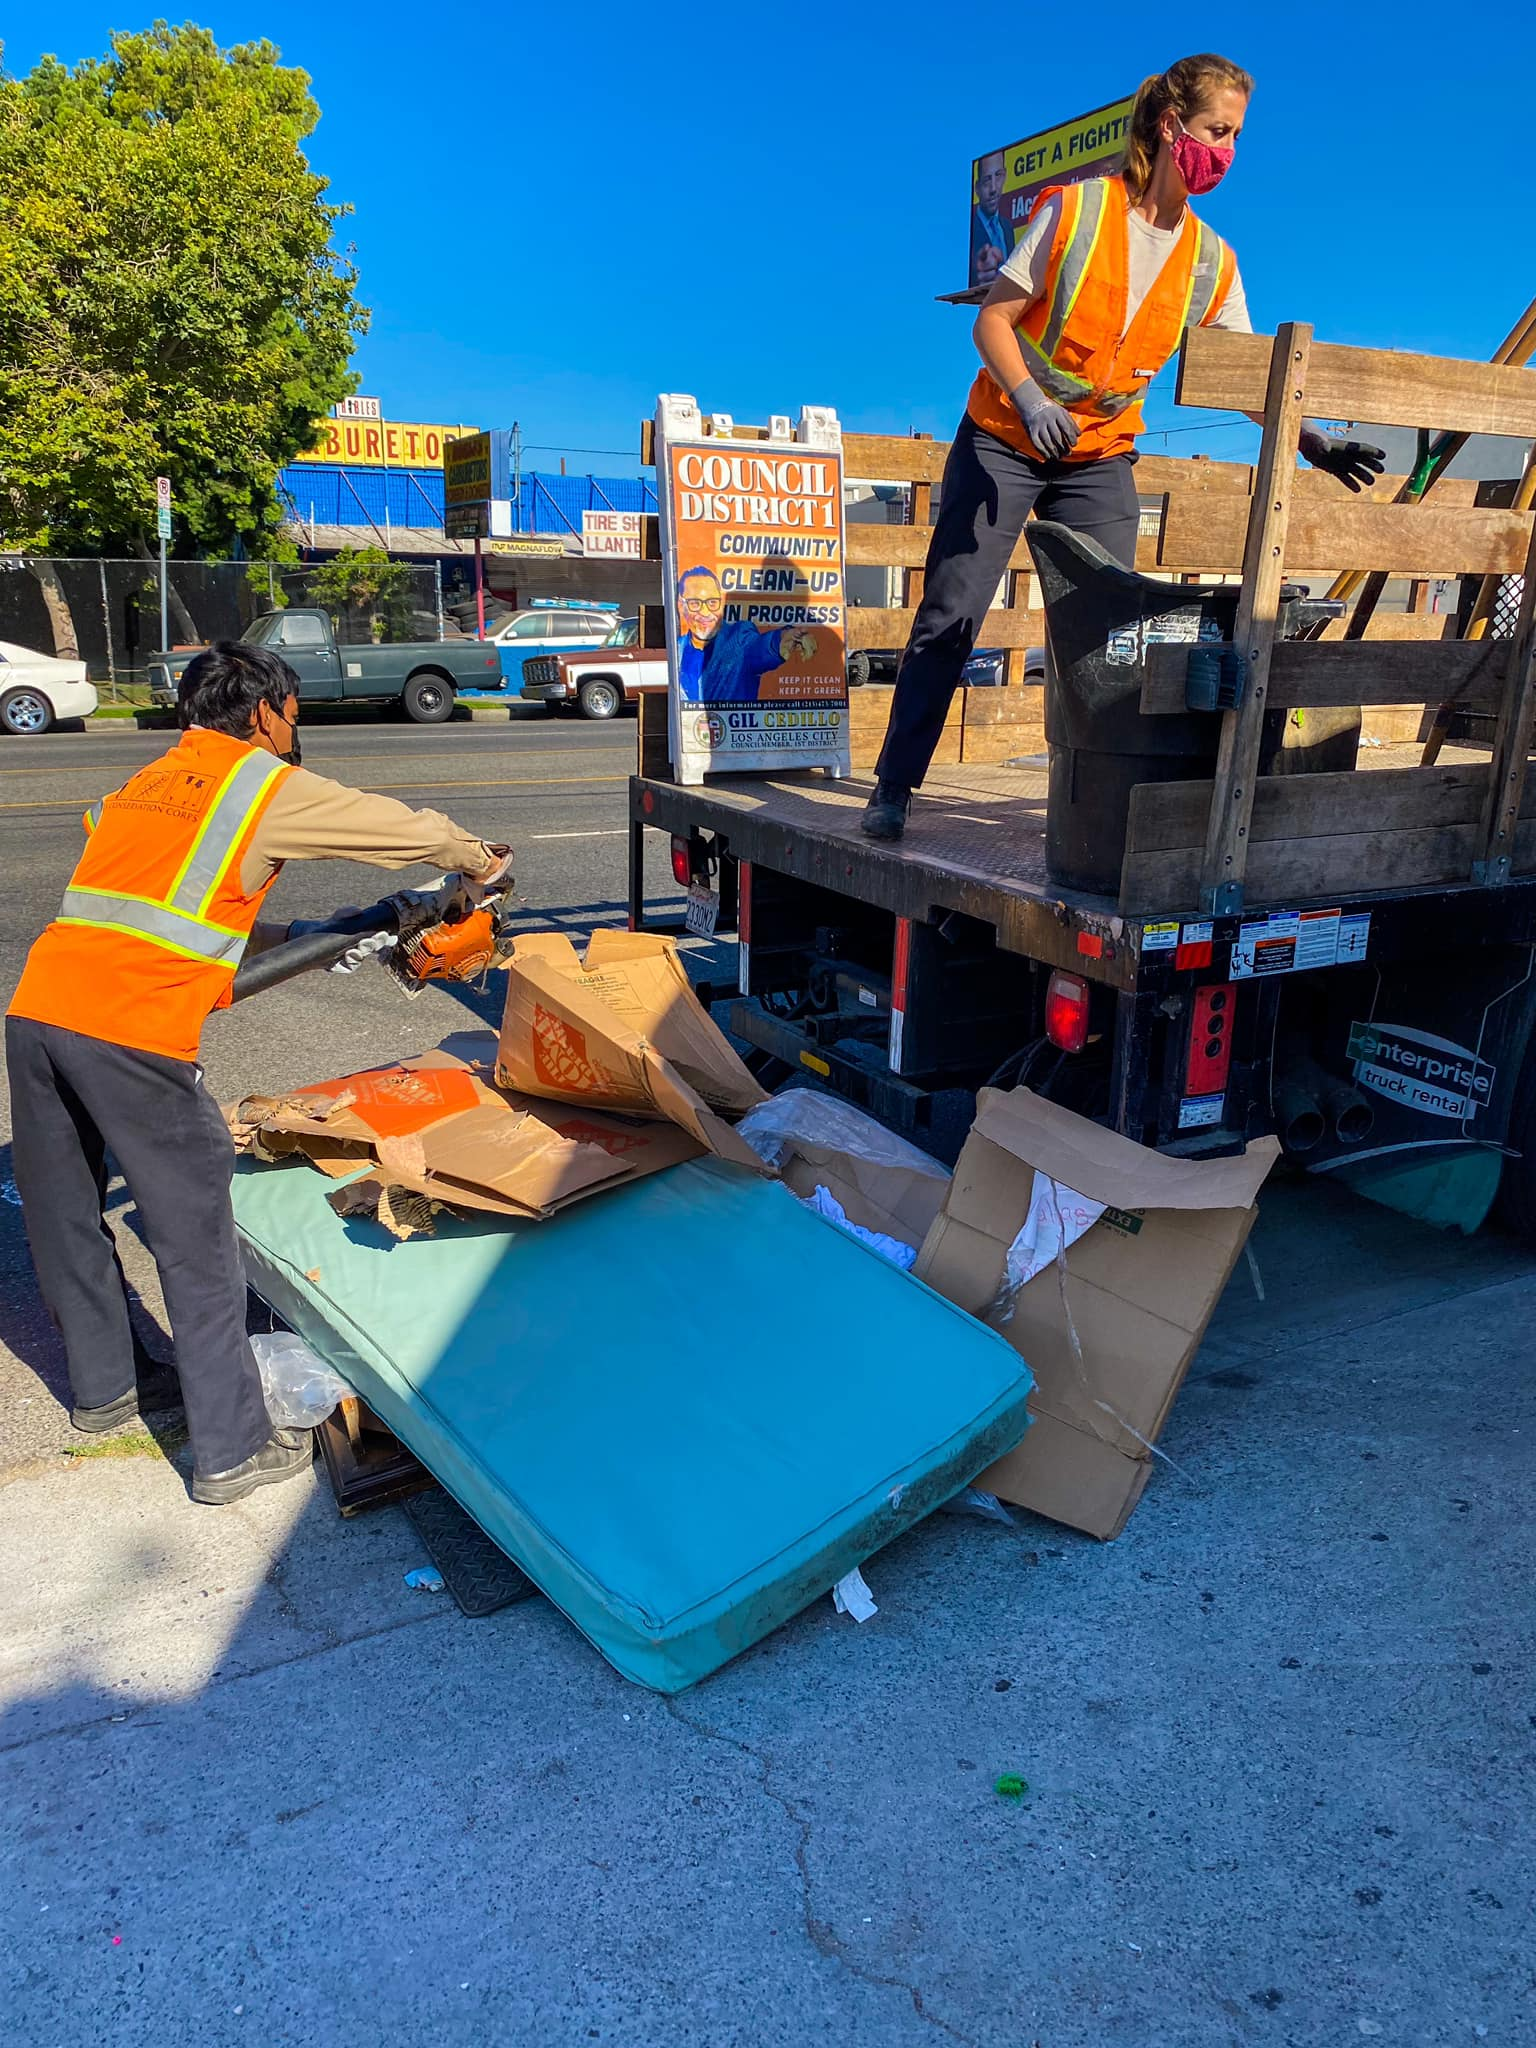 Councilmember Gil Cedillo's Strike Team cleaning alleys in Pico Union 6-14-2021 #1